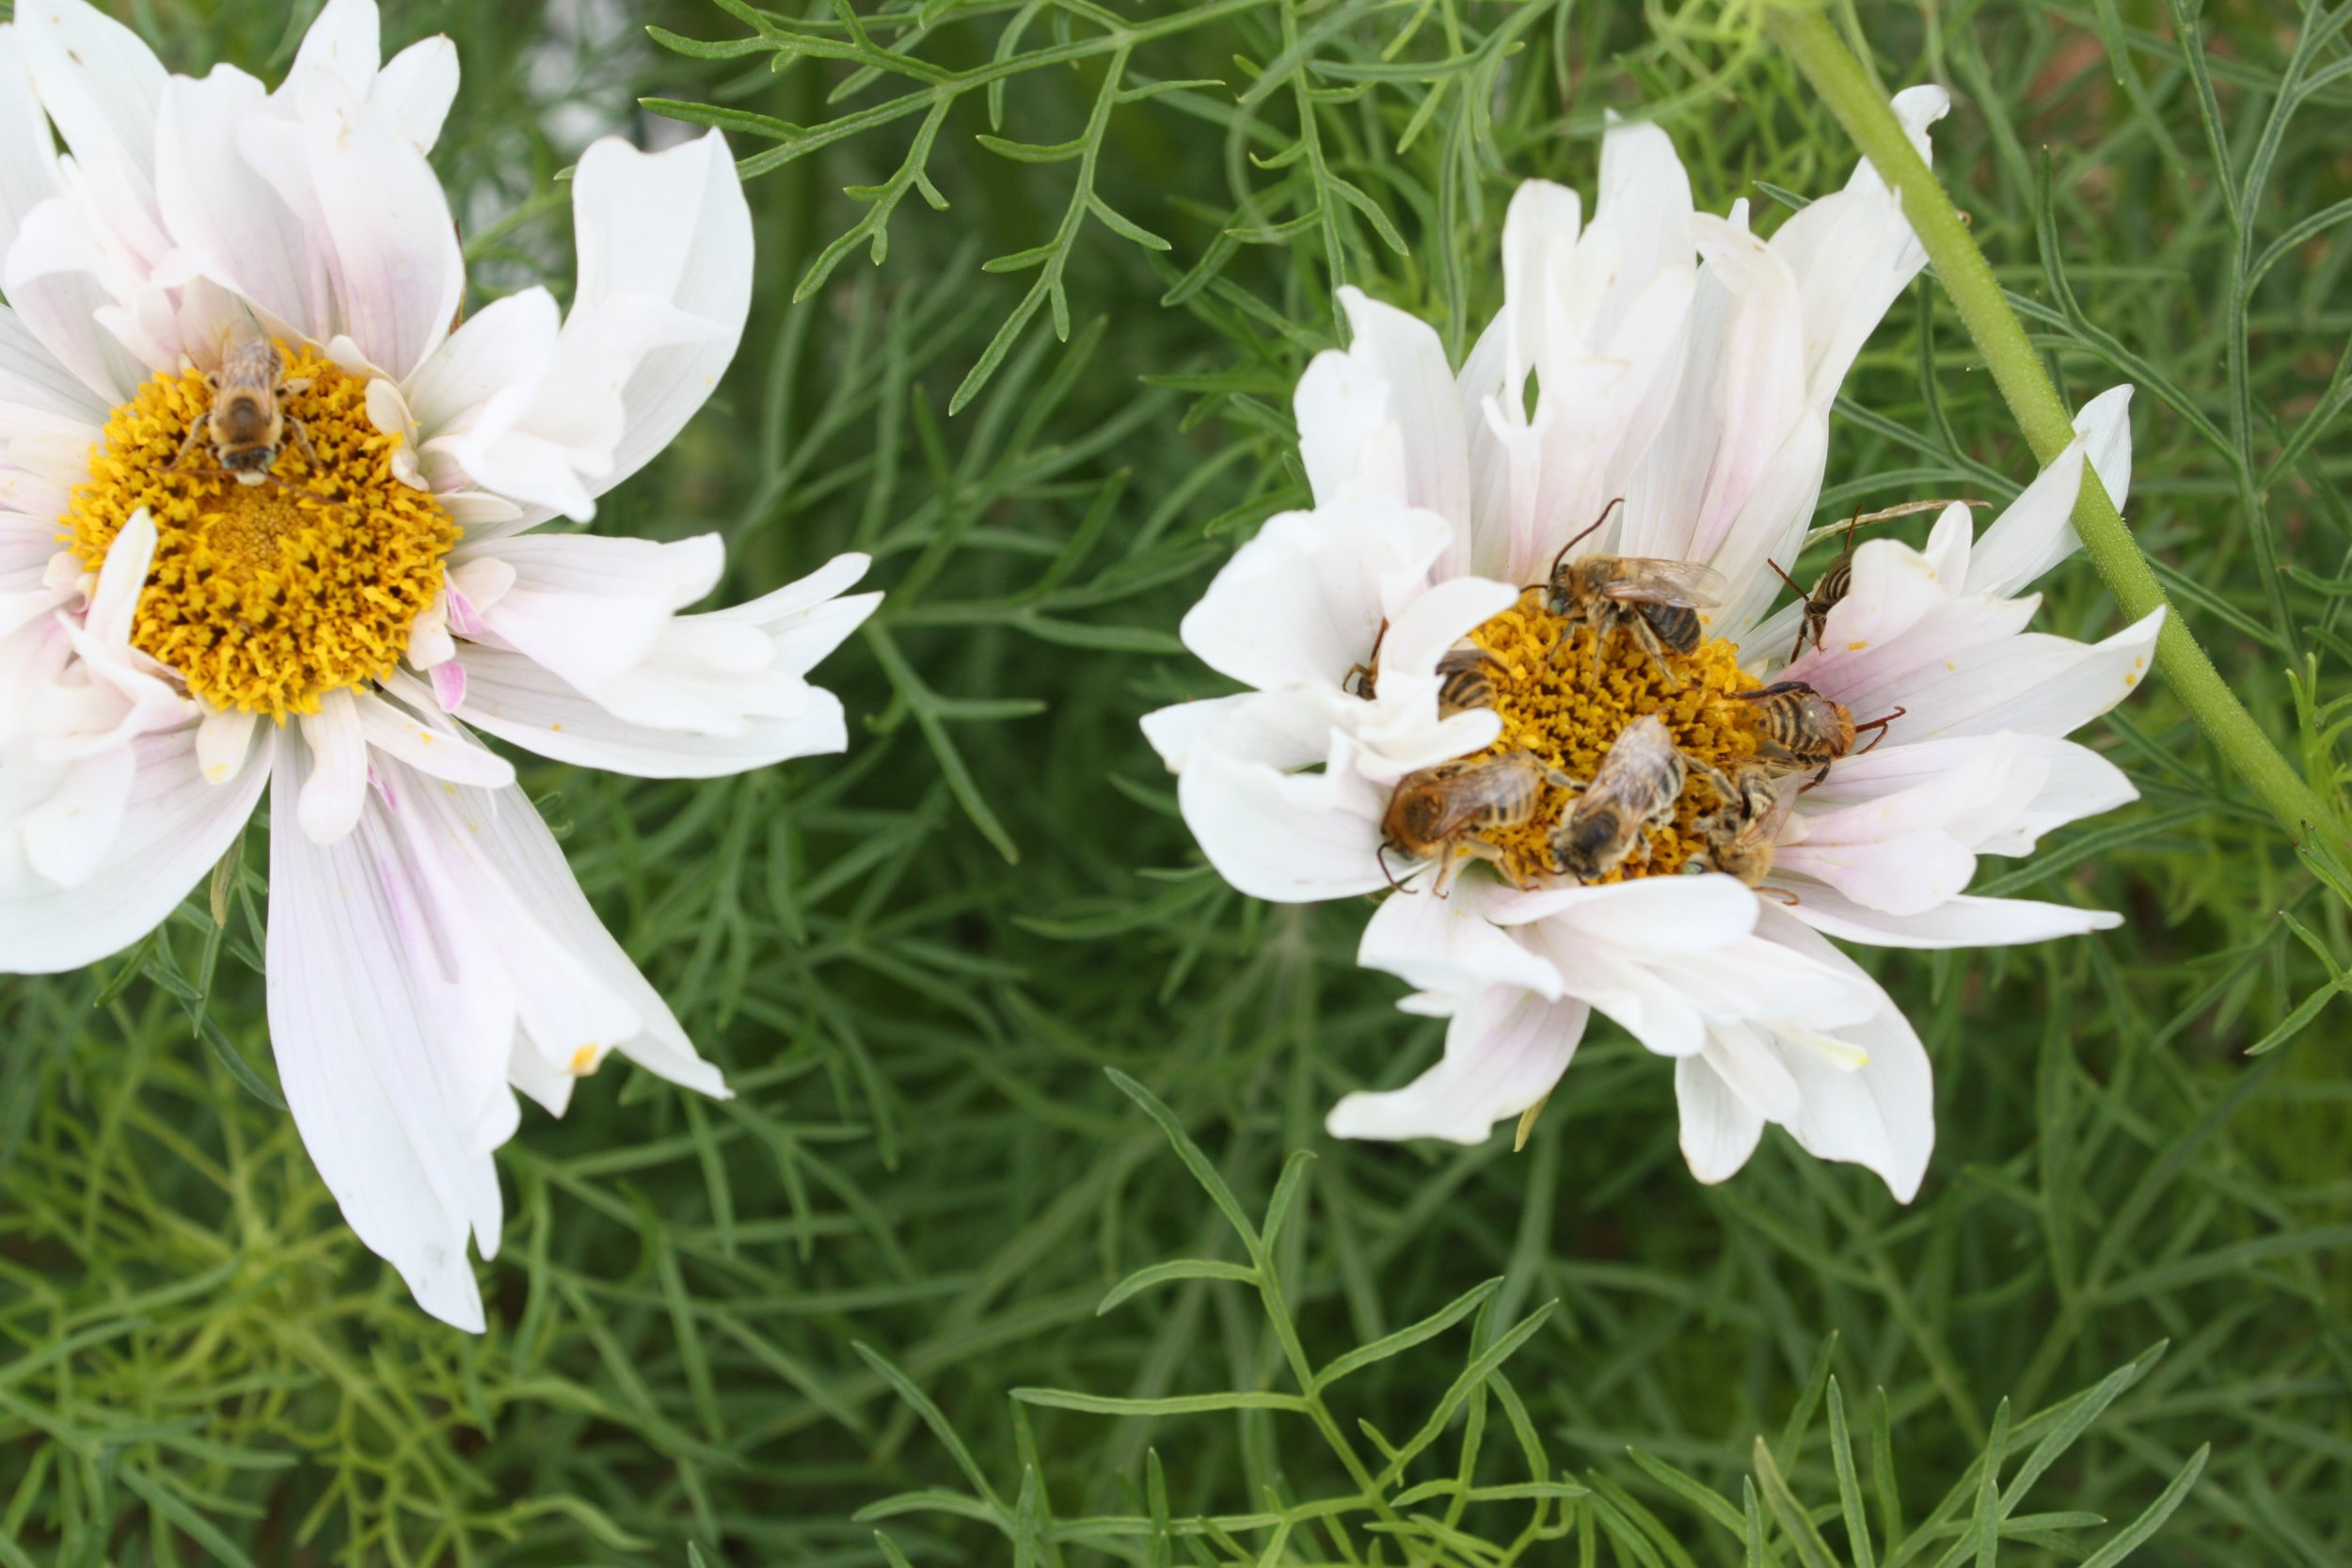 More bees sleeping in Cosmos